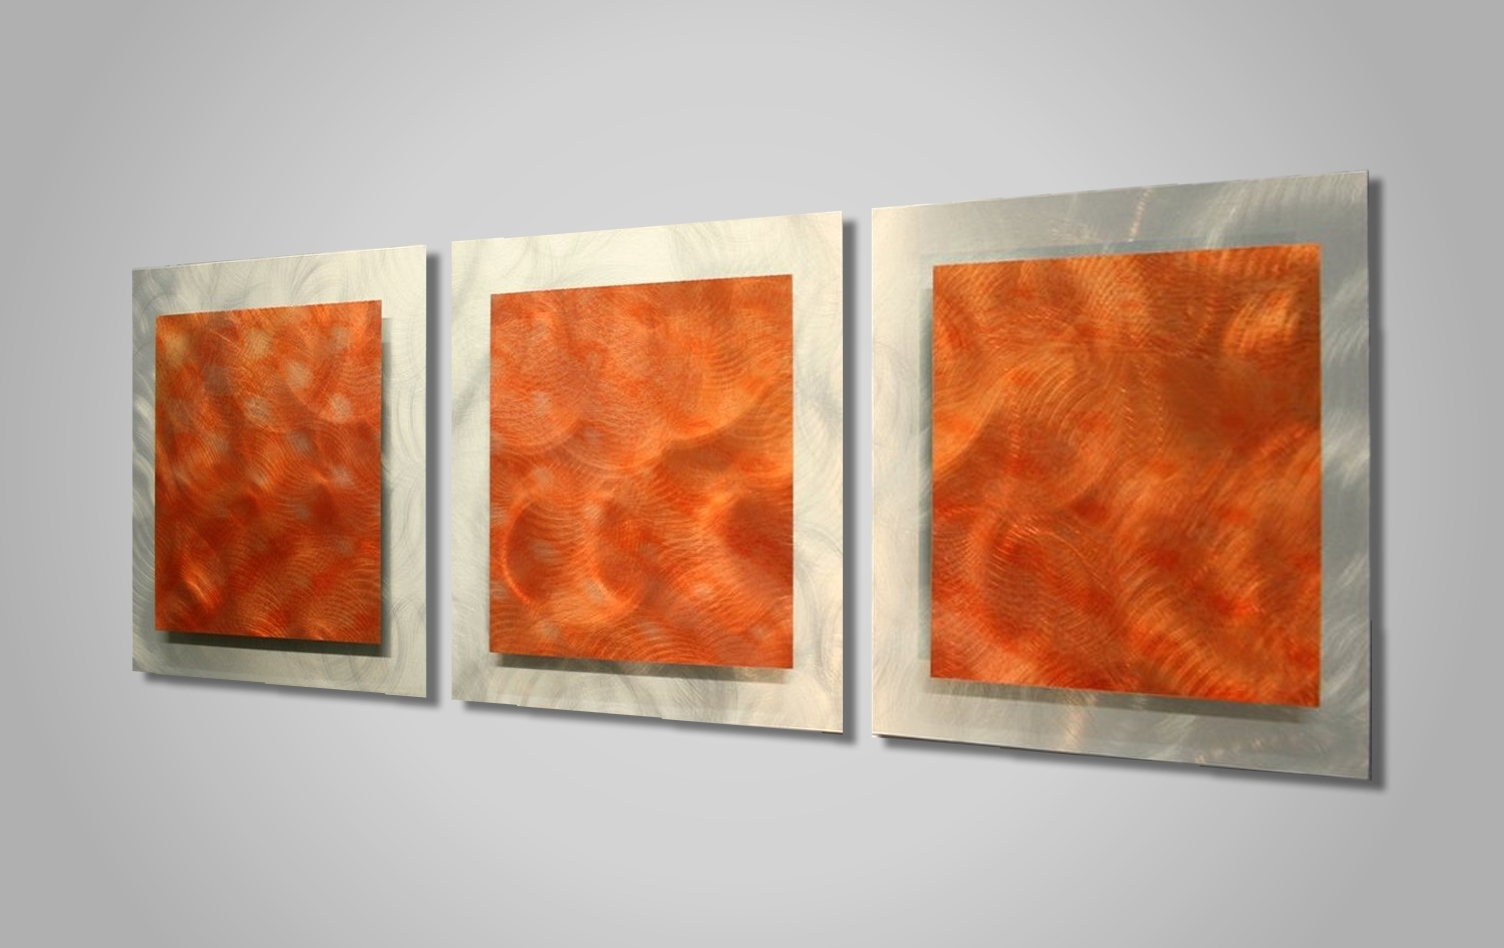 Orange Wall Art Imposing Ideas Pictures Of Contemporary Art Websites Pertaining To Orange Wall Art (View 3 of 20)